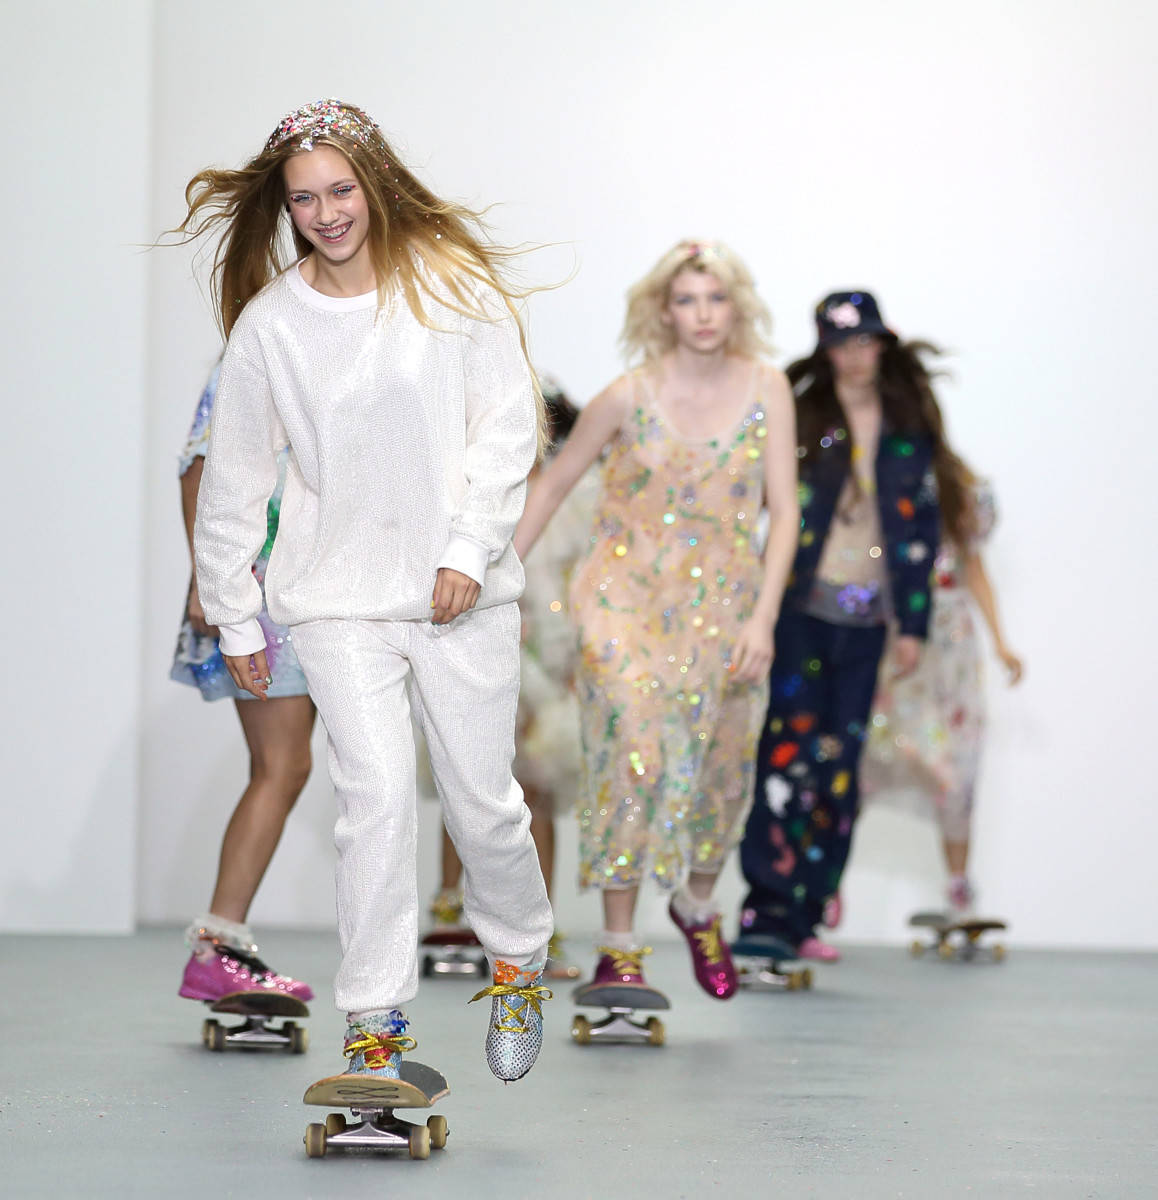 Models on skateboards at Ashish's spring 2016 presentation. Photo: Mike Marsland/Getty Images